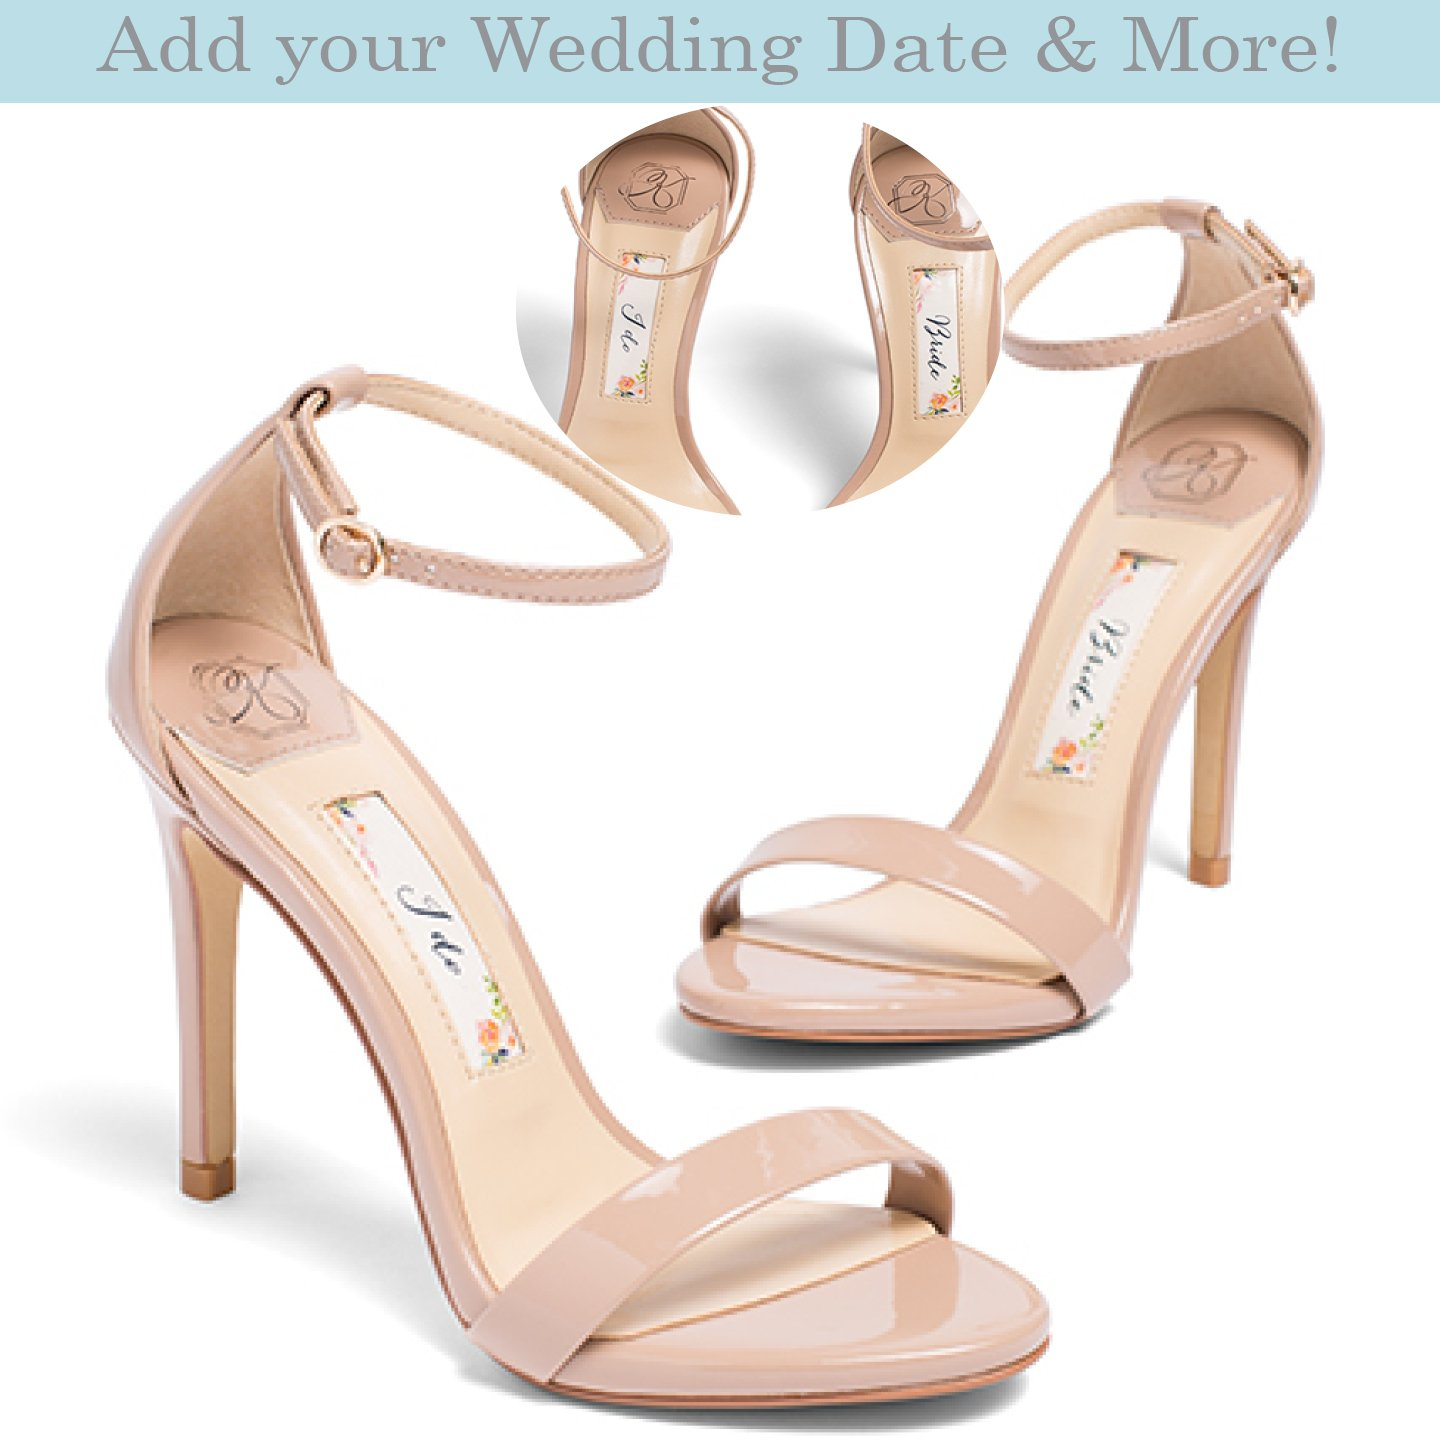 "deda802ff91 Amazon.com  Wedding Shoes -""Patent-Pending"" personalization - Nude wedding  sandal - Style Samantha  Handmade"